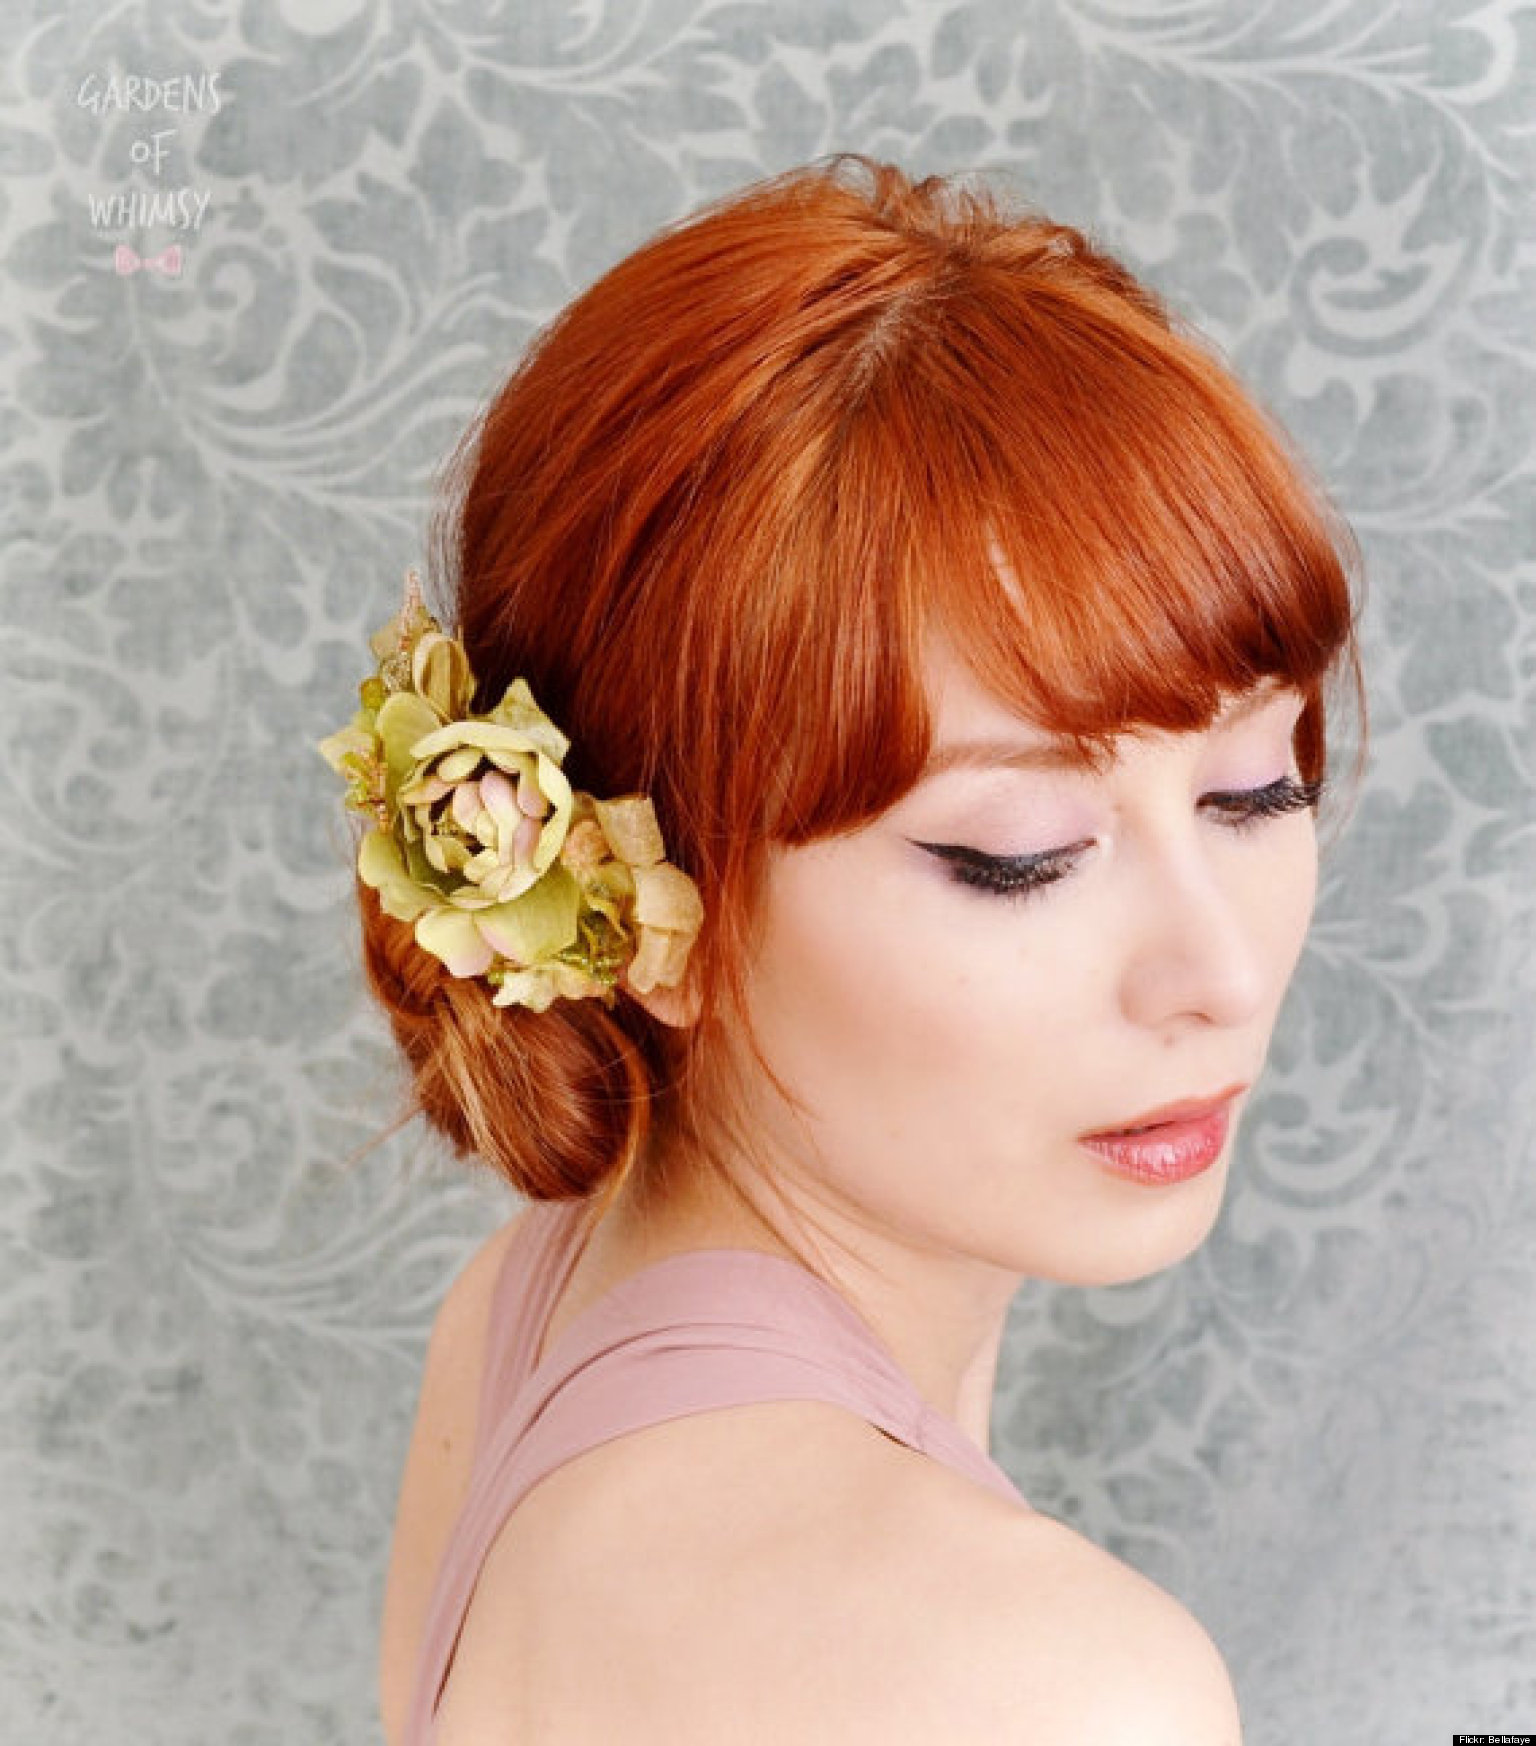 Wedding Hairstyle Guide: Wedding Hair: A Guide To Your Best Big Day 'Do